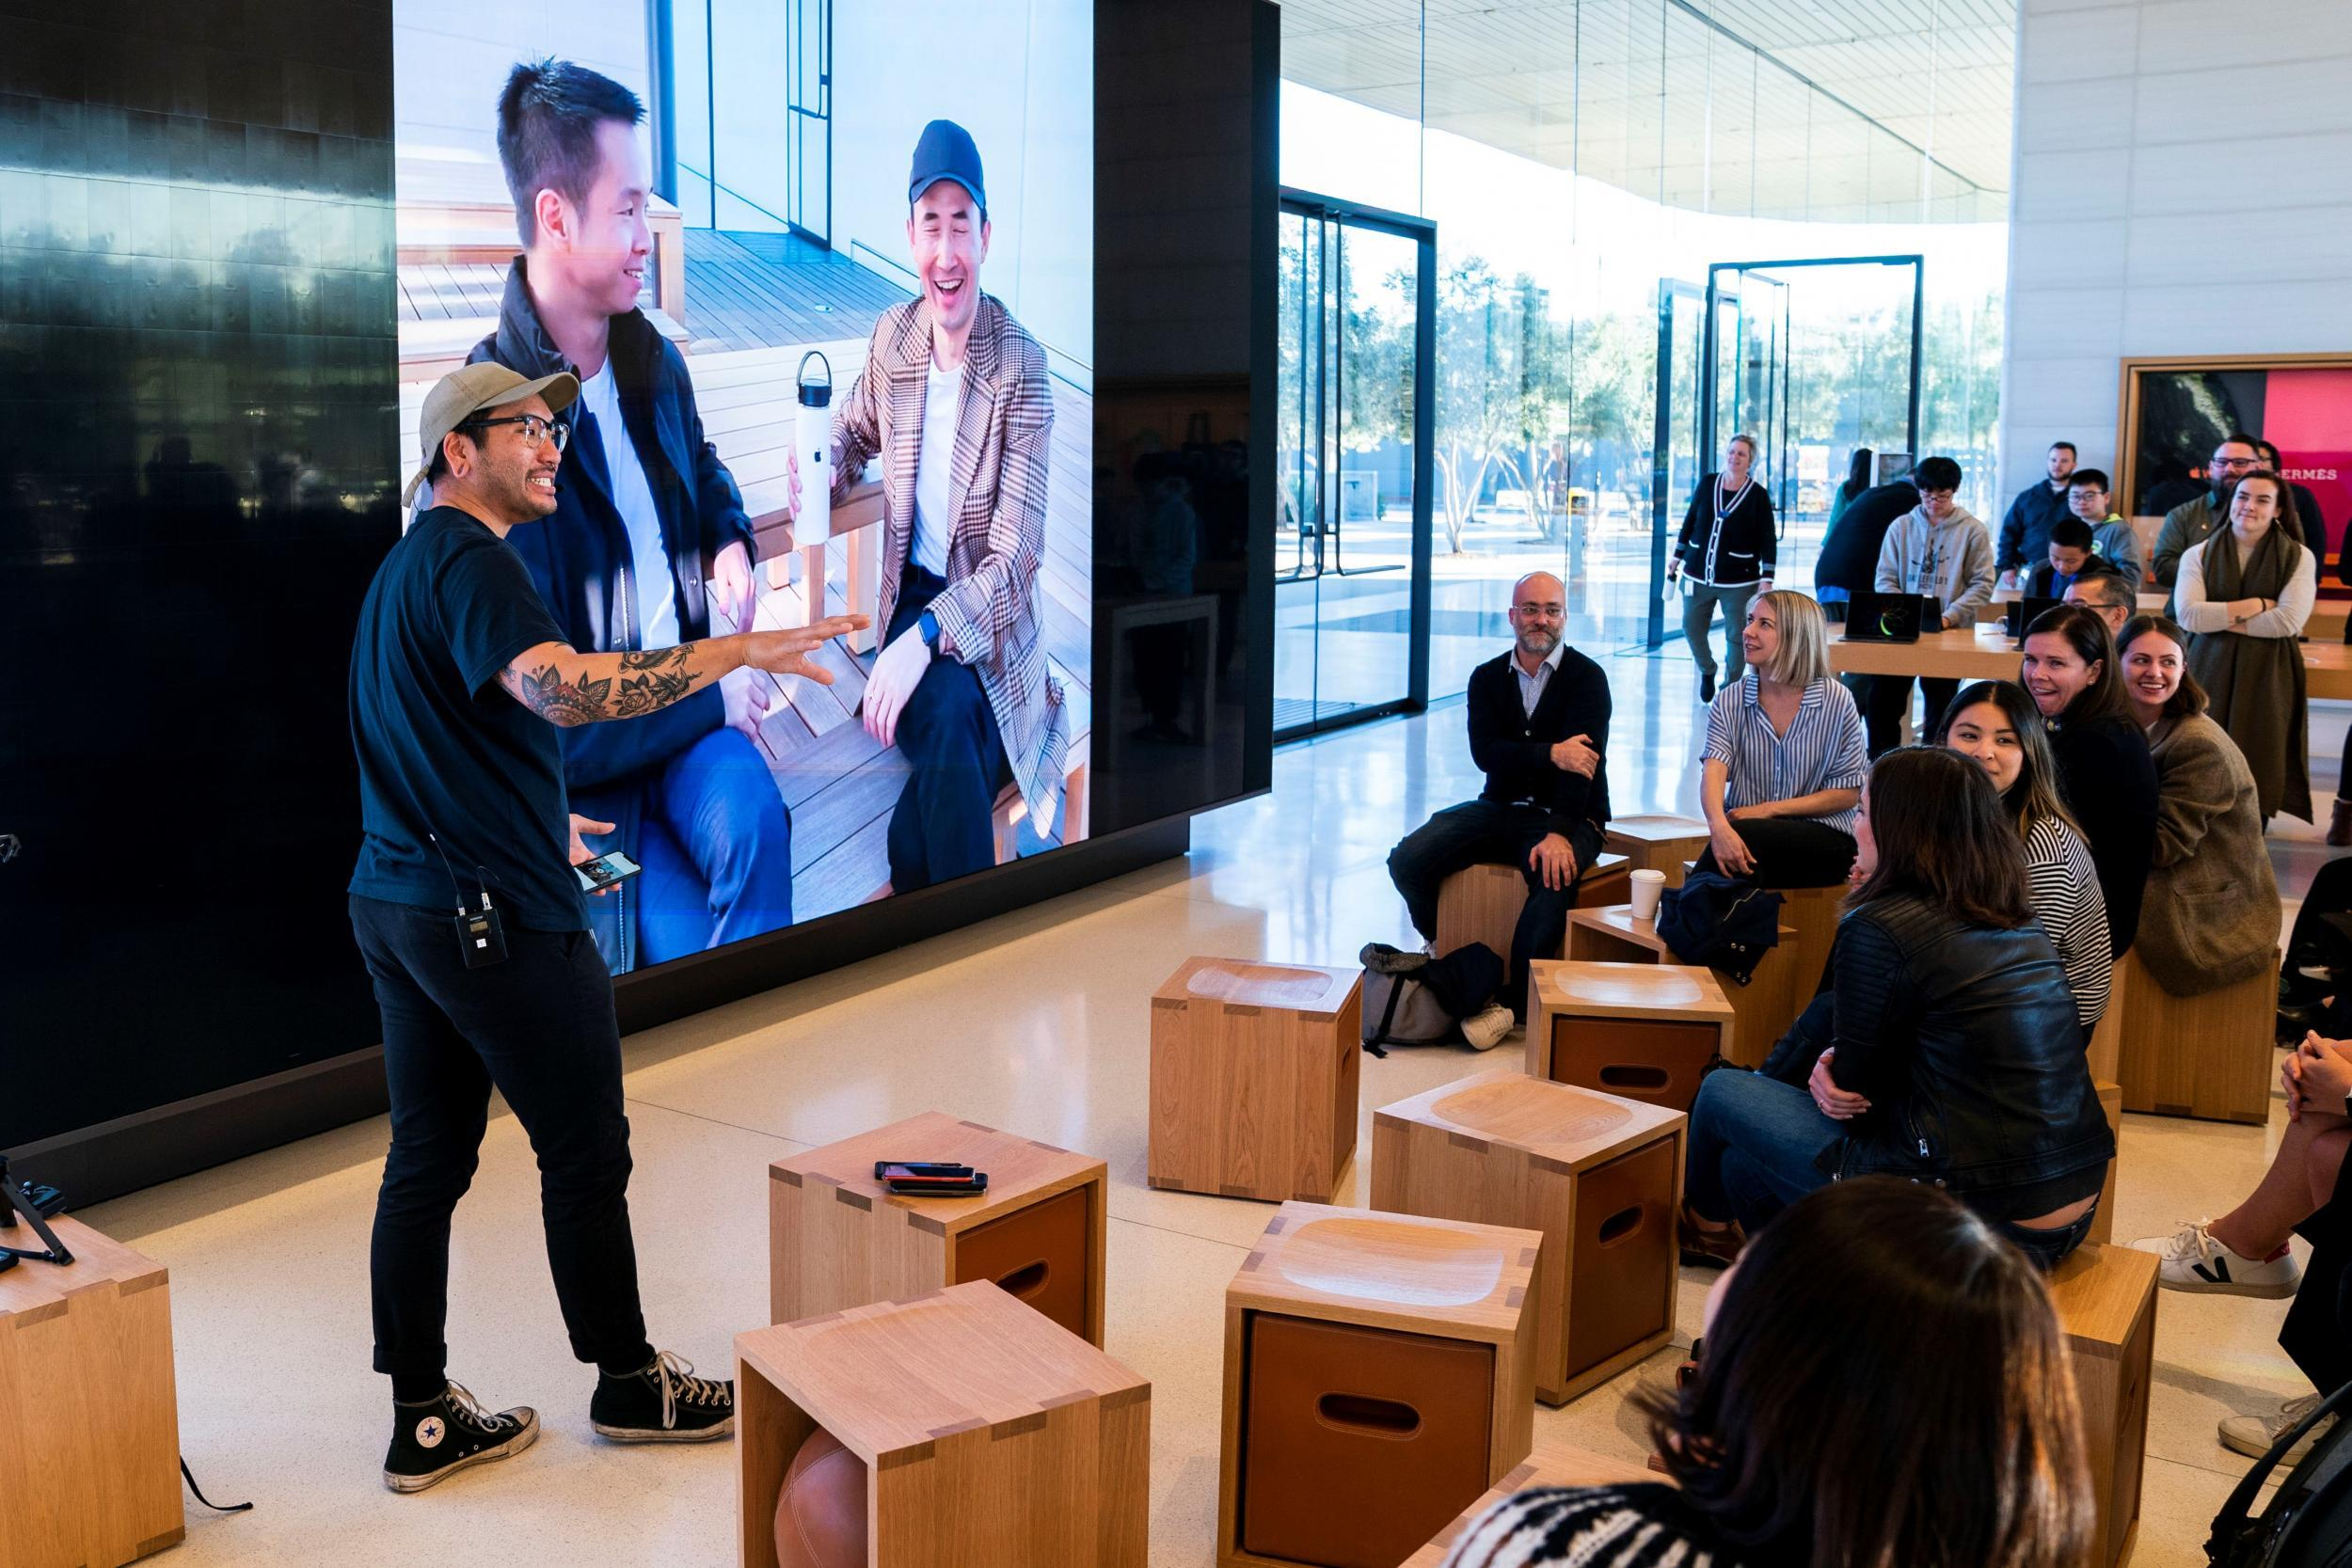 Apple updates stores to include Today at Apple sessions 'to help